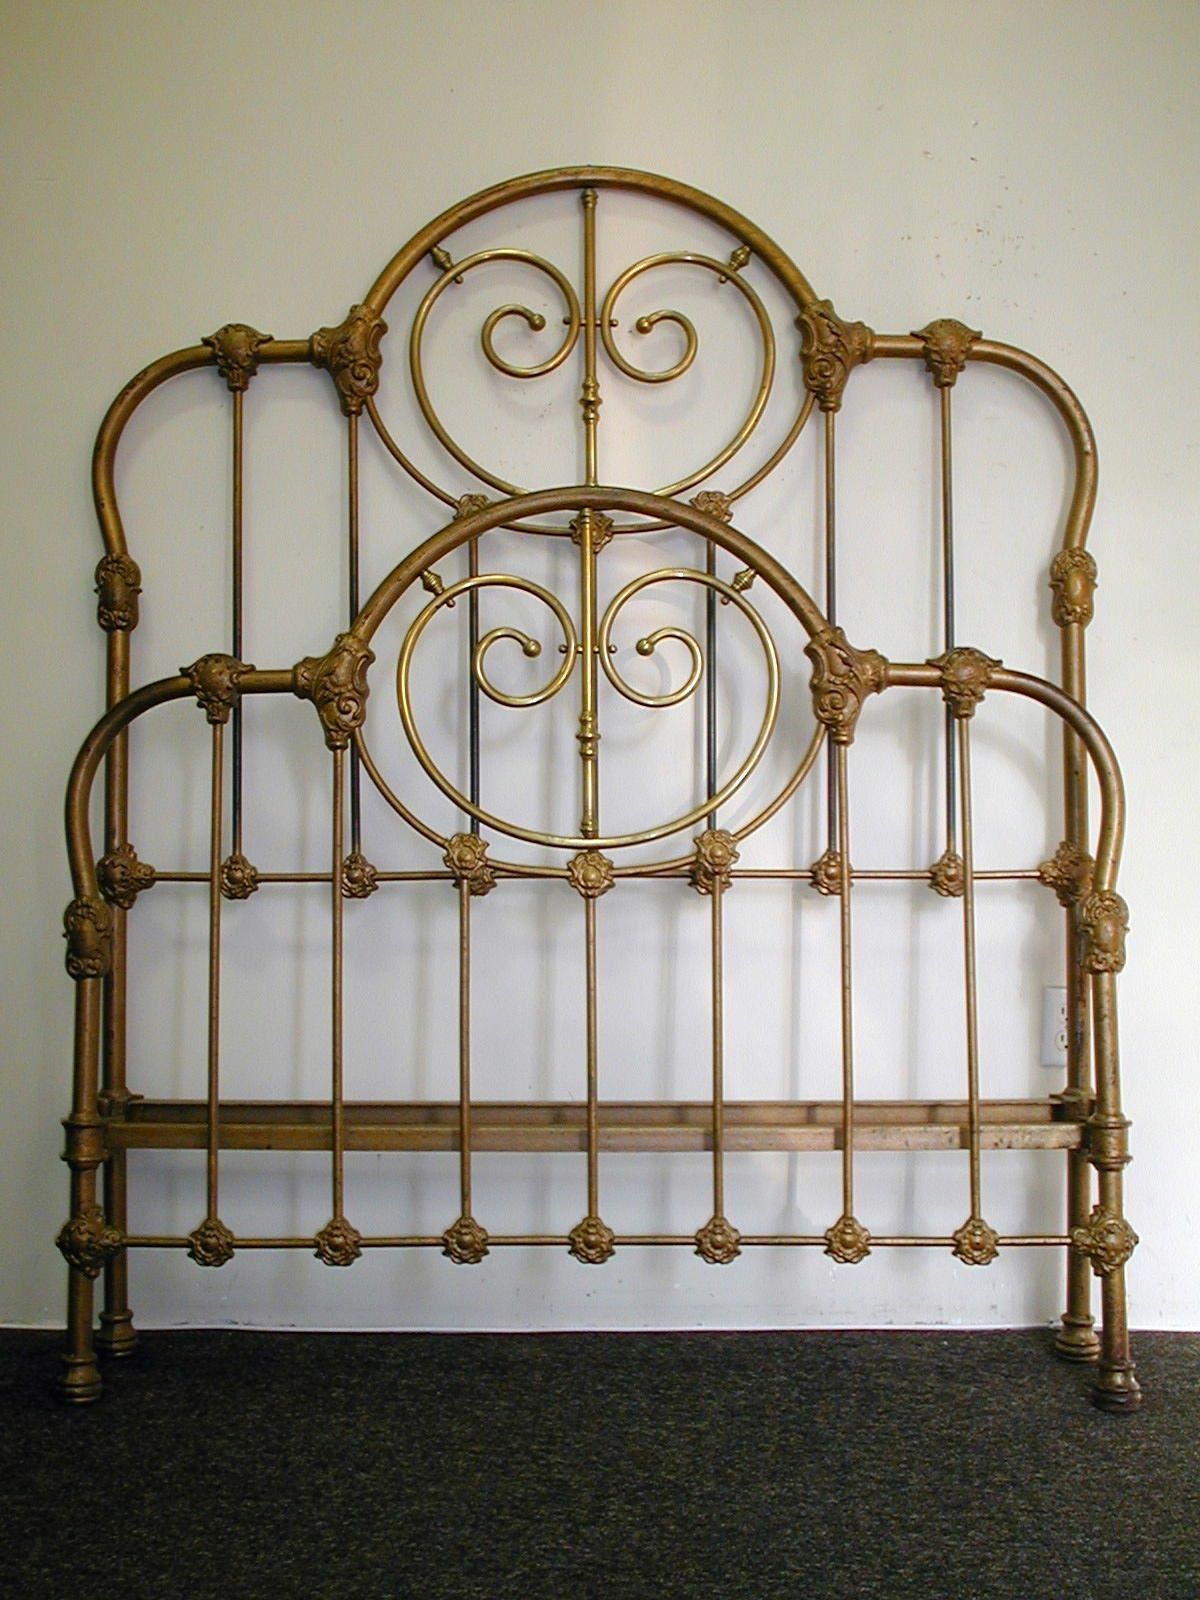 Heavy Gauge Tubing W Scrolled Brass And French Side Curve Circa 1865 Ironbeds Antiqueironbeds Antique Iron Beds Iron Headboard Iron Bed